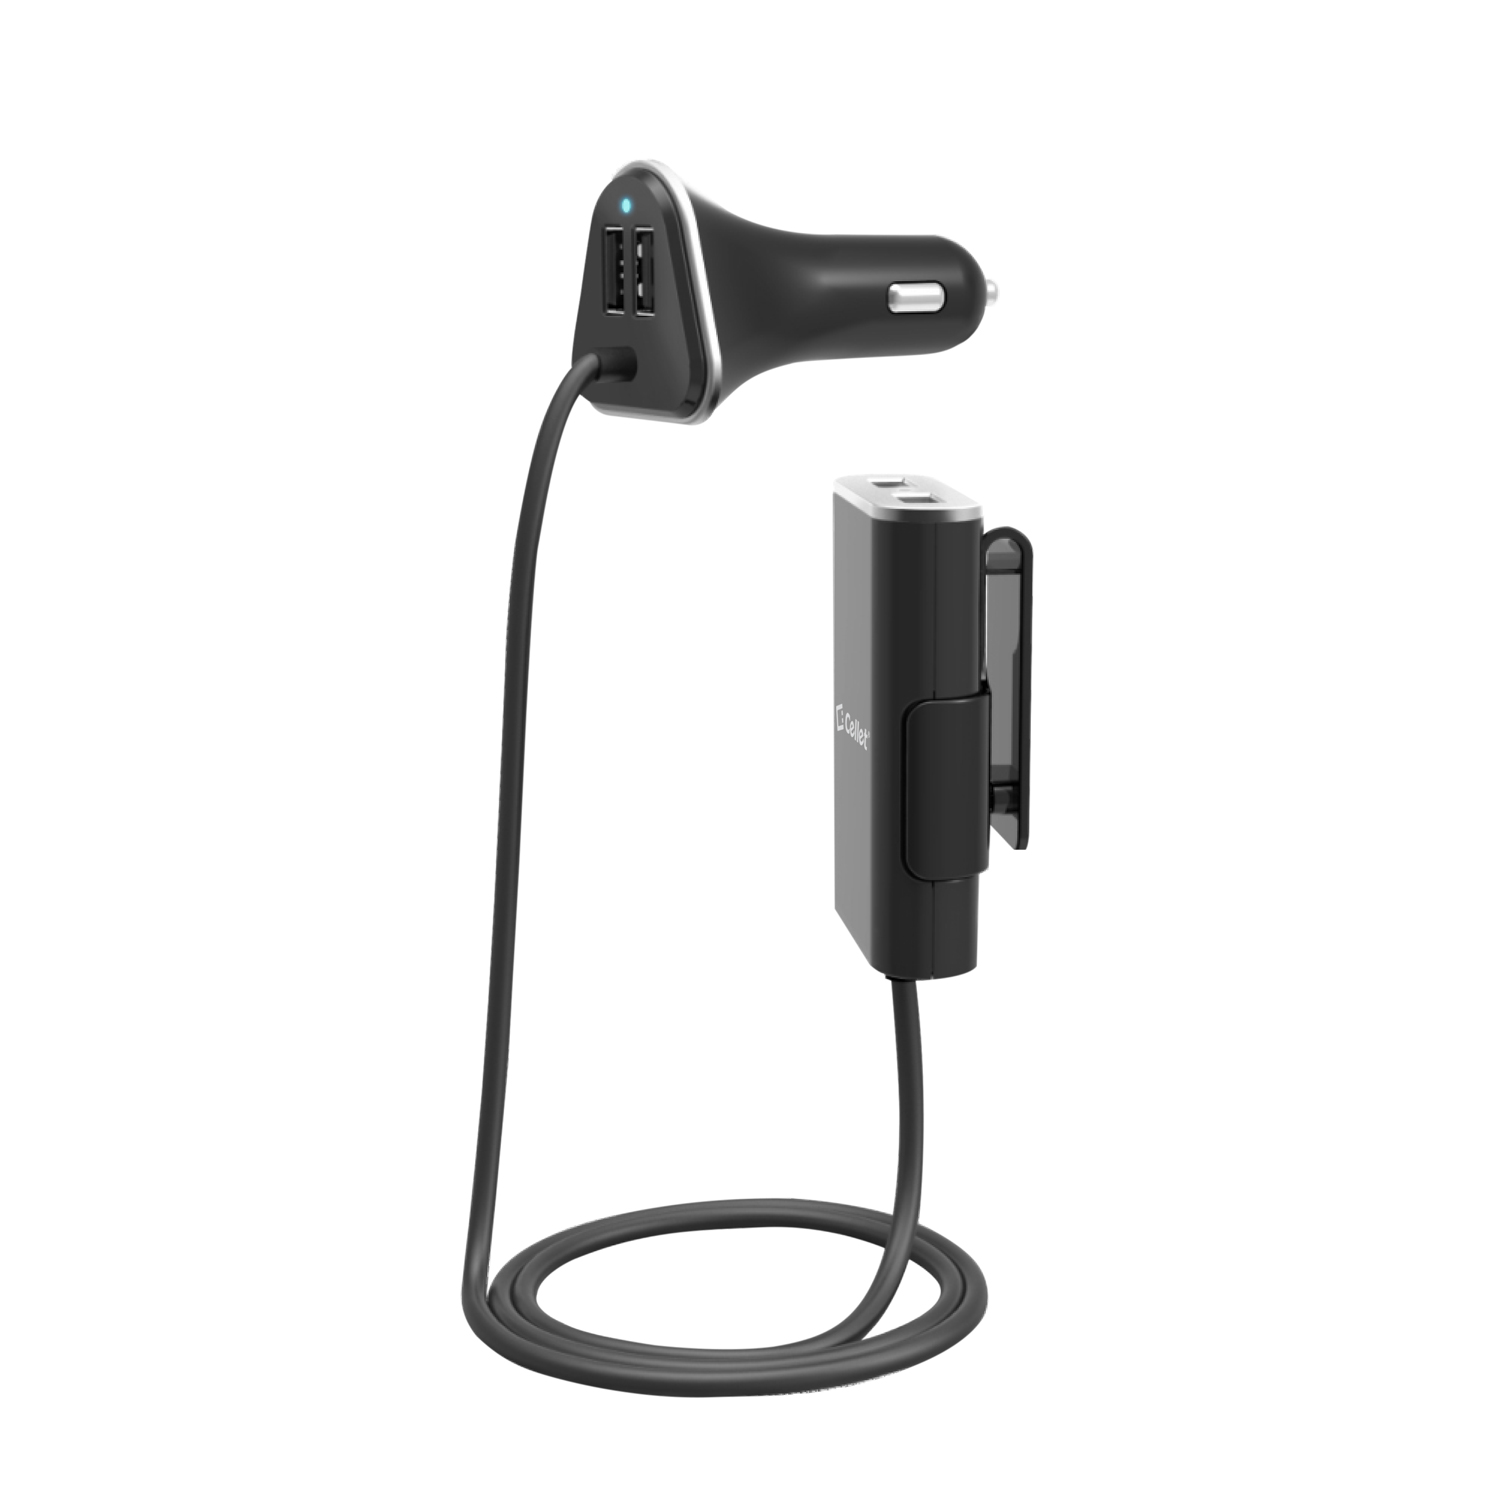 LG Rumor2 (UX-265 Banter) 4 Port USB Car Charger Front Back Seat Black